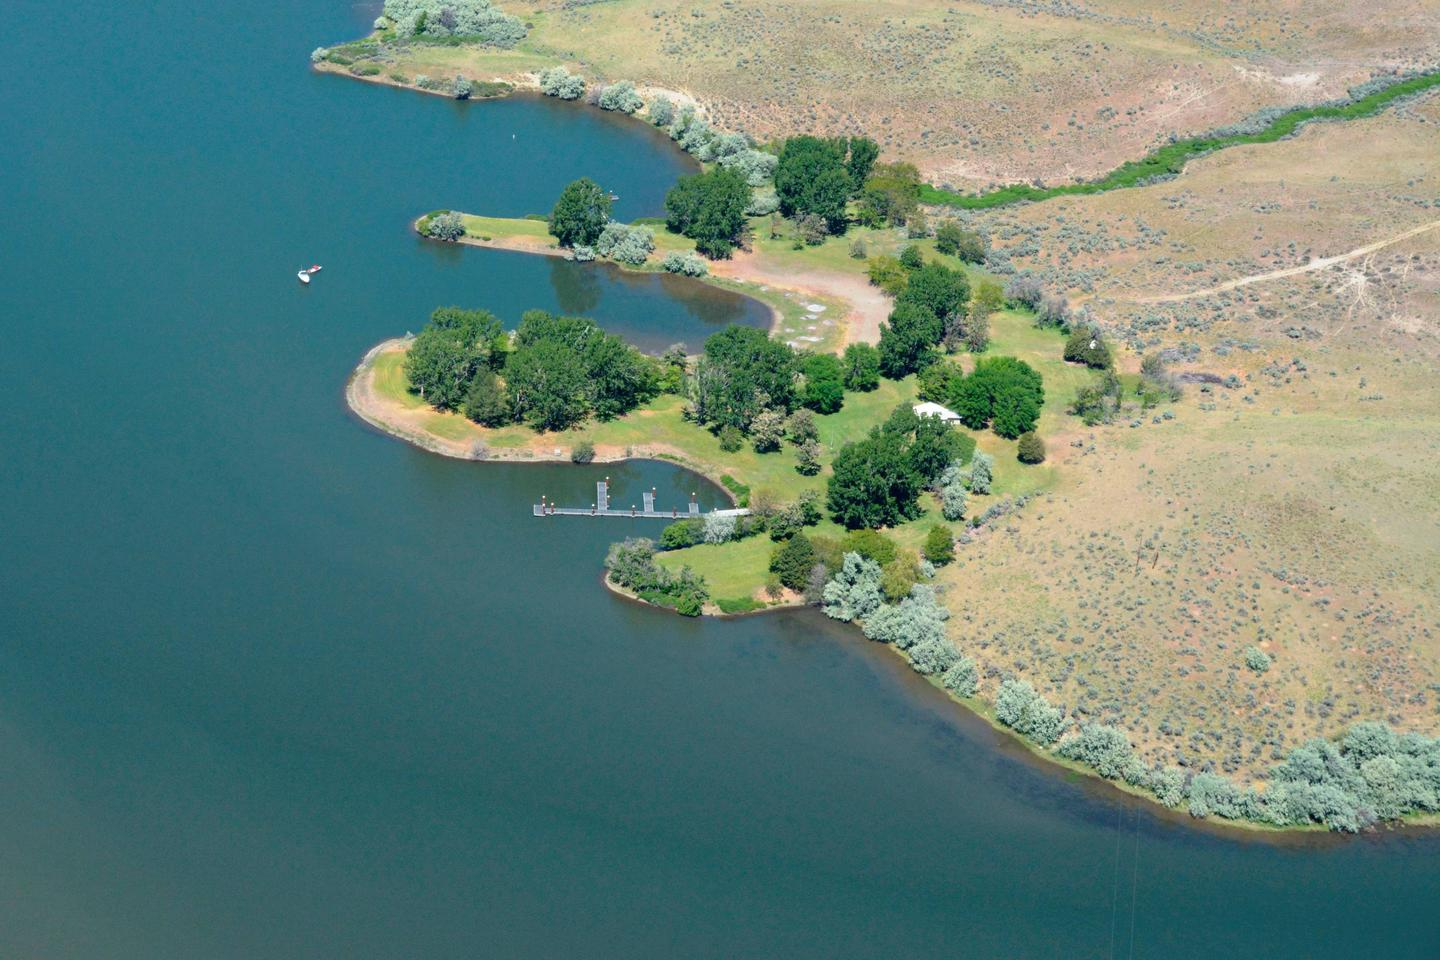 Philippi Park: a boat-in only park located 3 miles up the John Day. Camping is available on a first come, first served basis. Donations can be made to support the OPAL Foundation at the park. Visitors may launch from the LePage Park Boat Ramp.